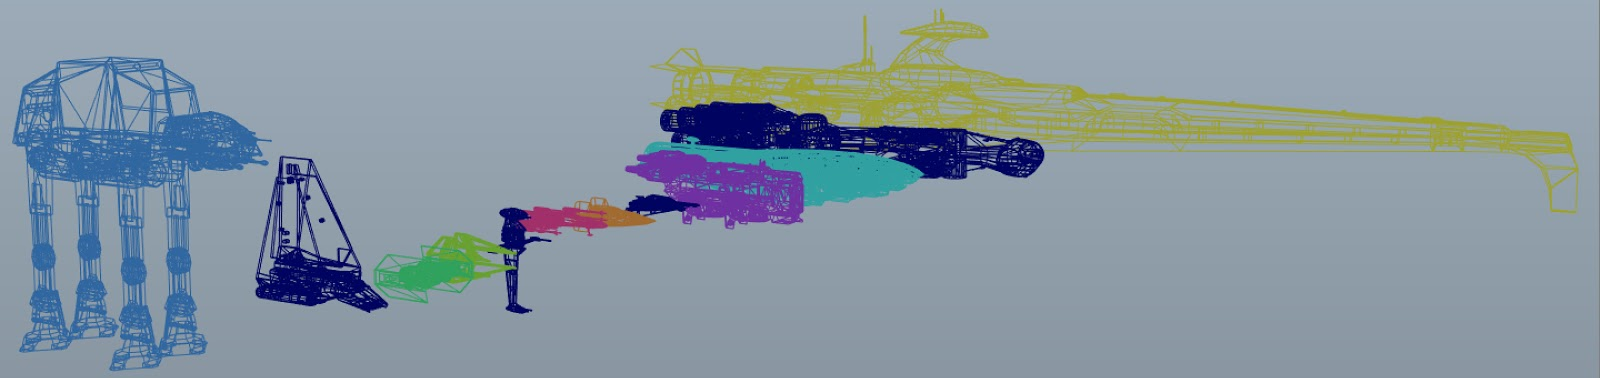 Big Star Wars OBJ Giveaway – 3D Models of Your Favorite Star Wars ships and vehicles – 12 of them – one for every month of the year